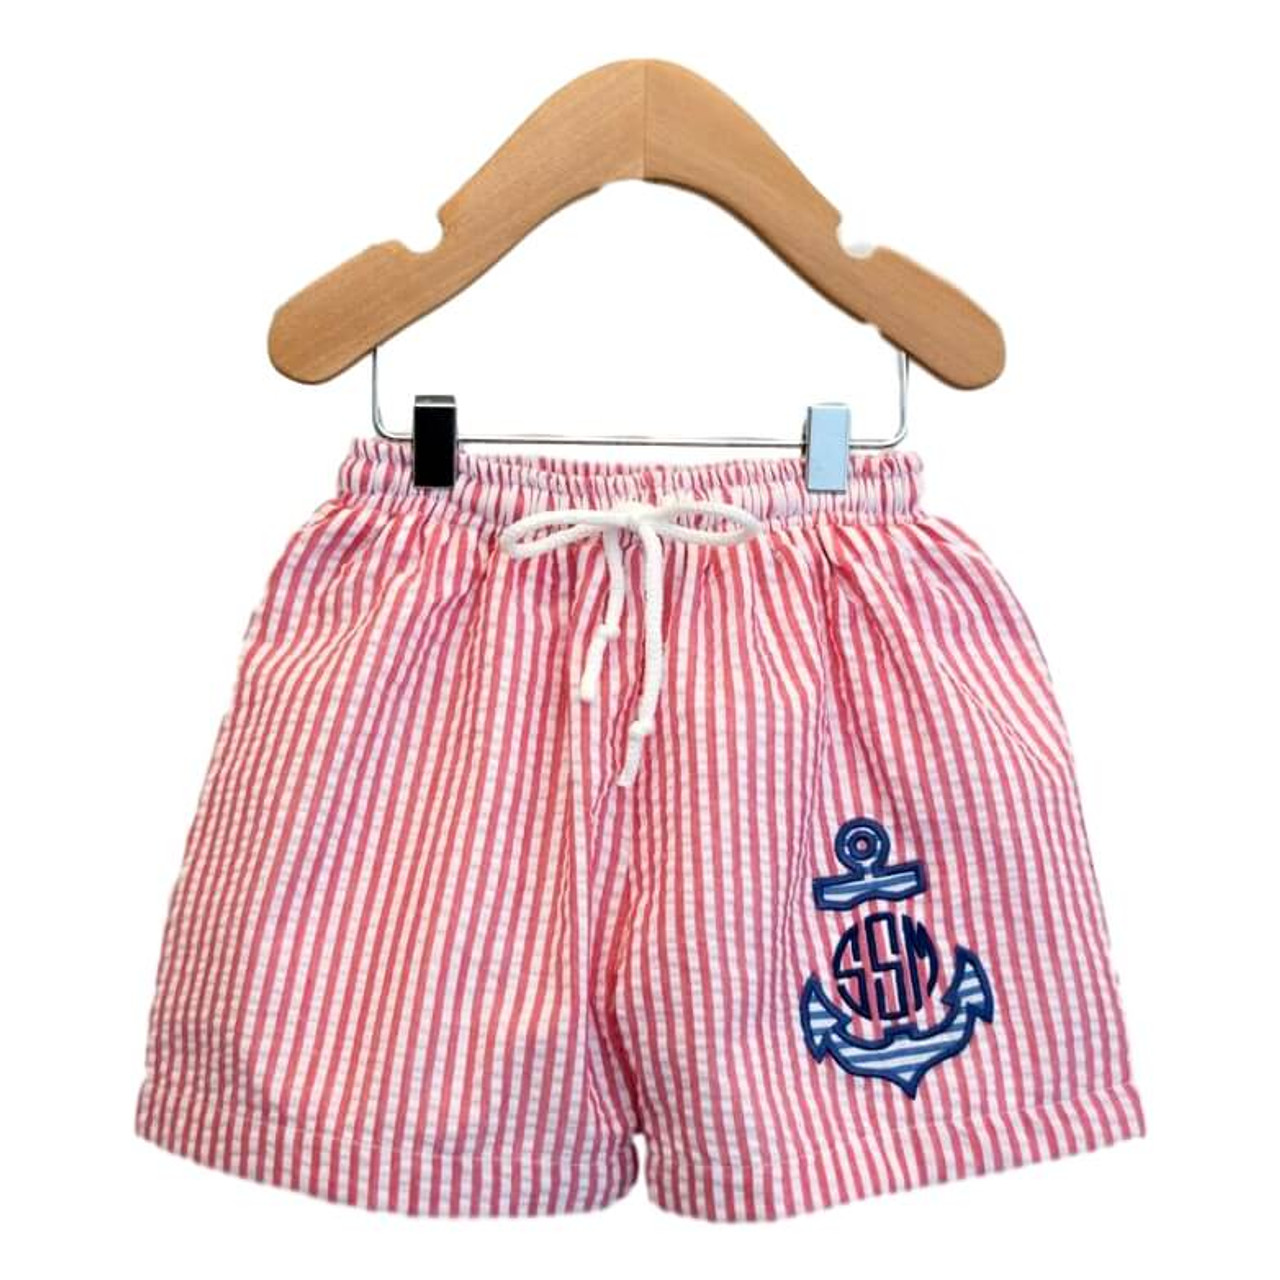 6636b12171 Red Seersucker Applique Anchor Swim Trunks - Cecil and Lou